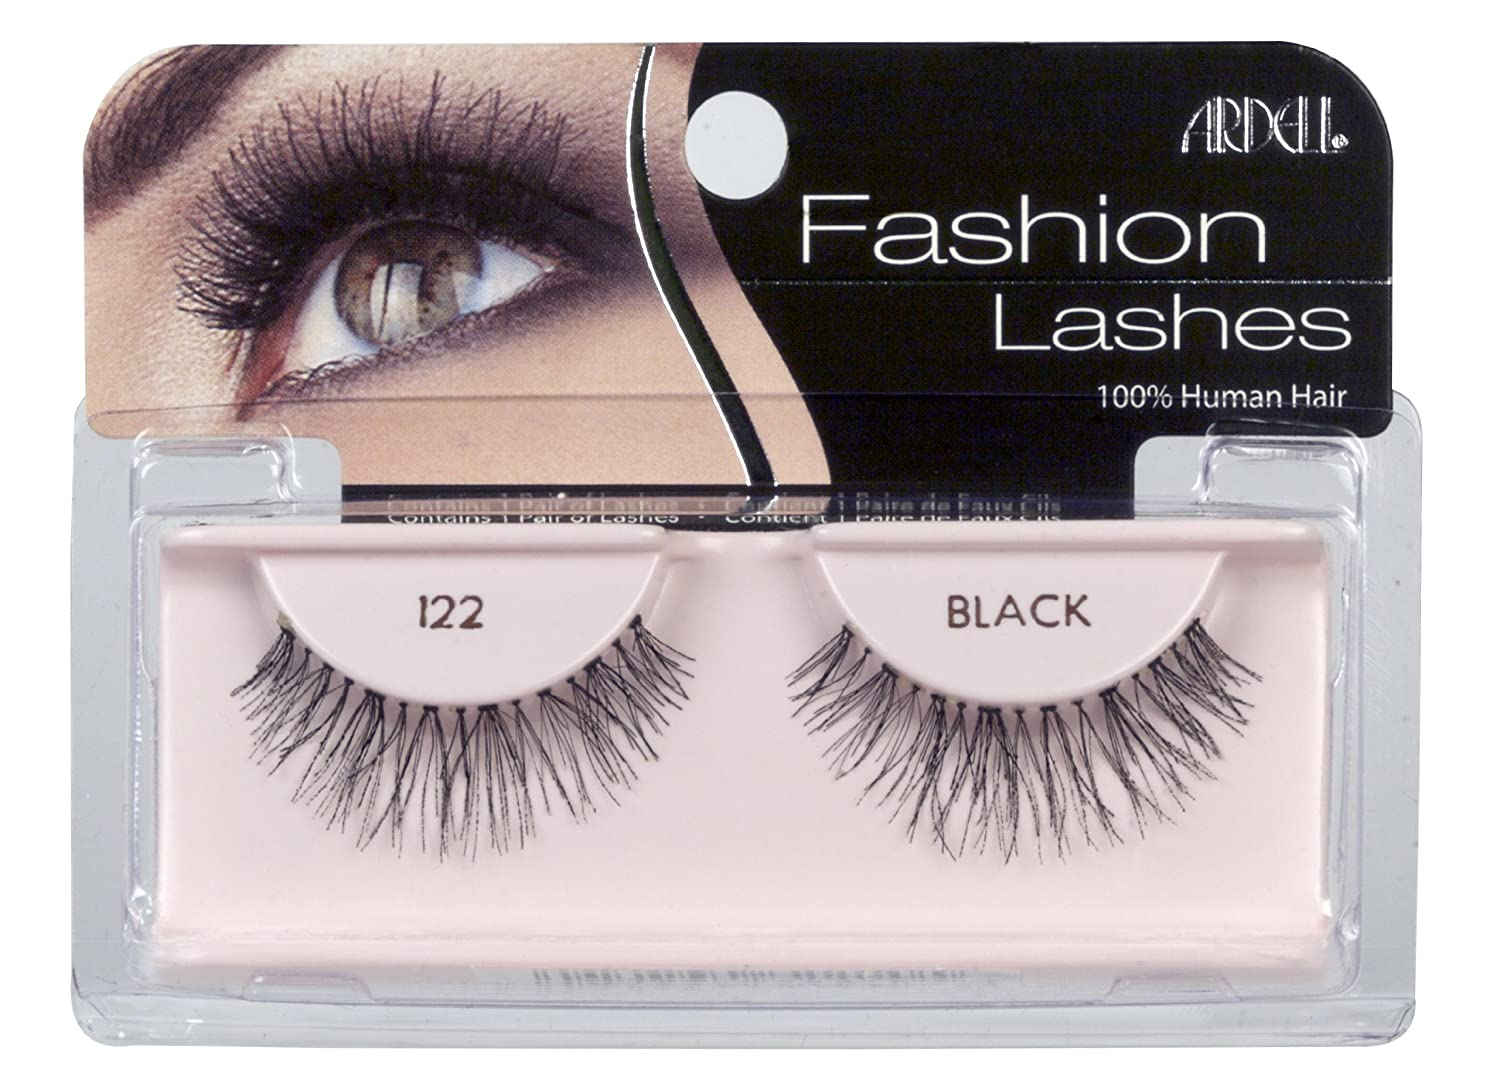 53a6ec7f639 Amazon.com : Ardell Fashion Lashes Pair - 122 (Pack of 4) : Fake ...